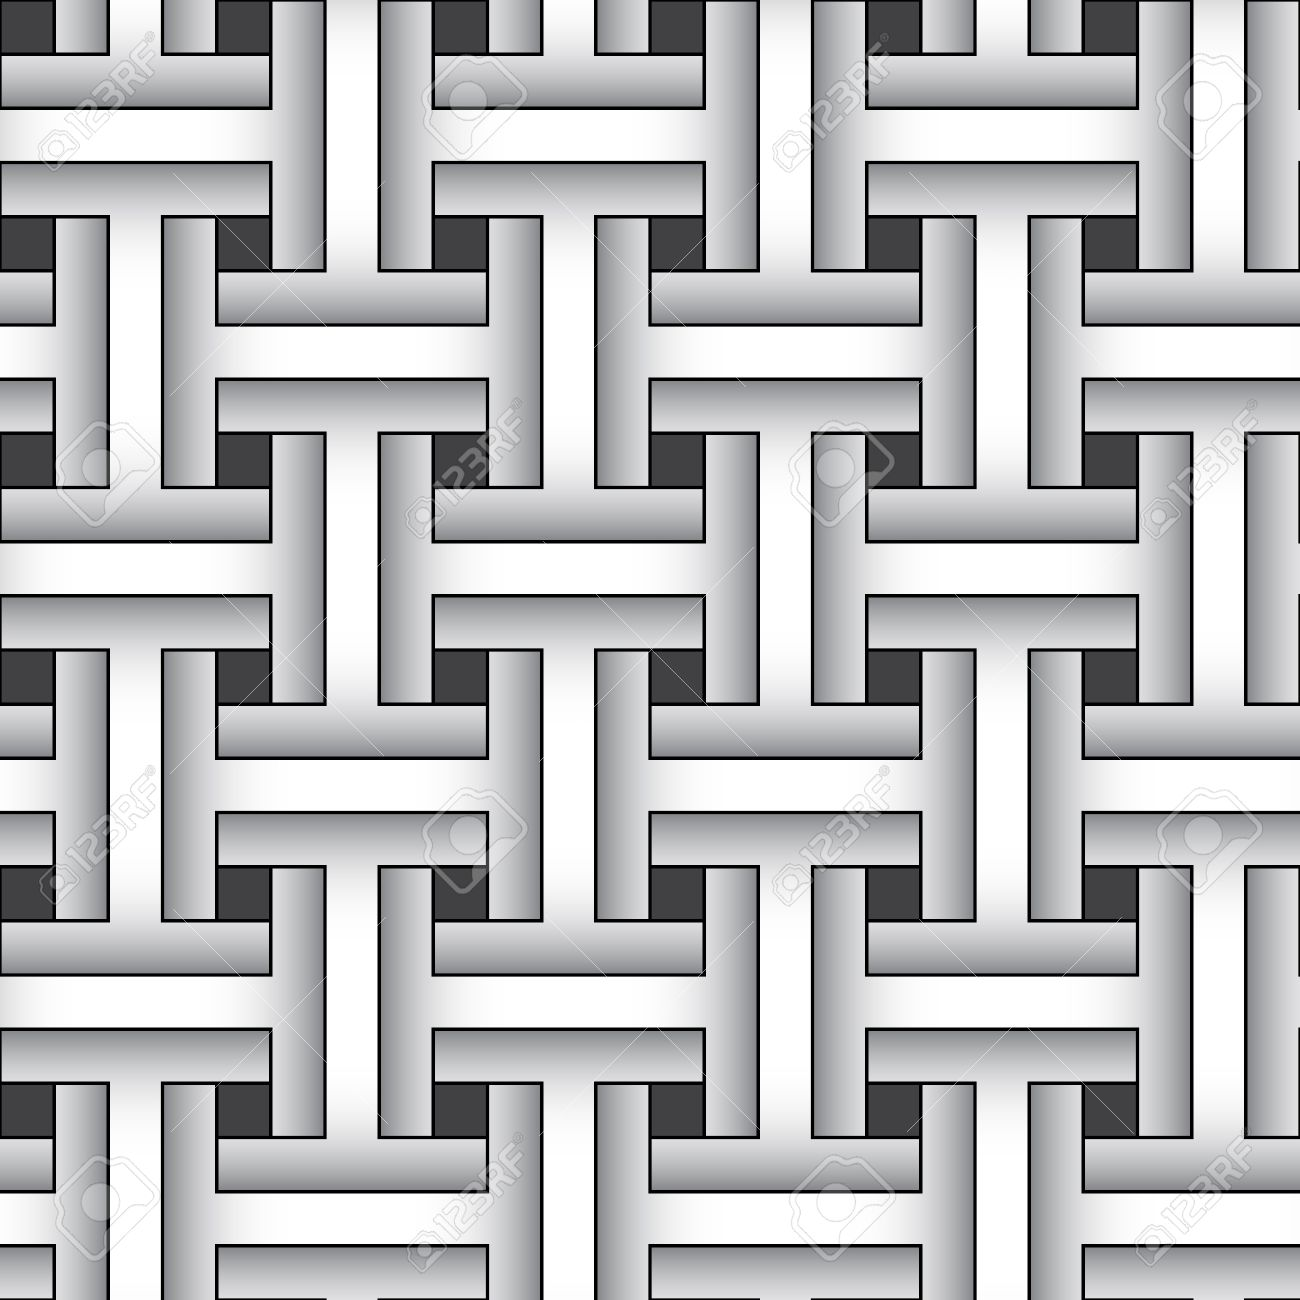 Weaving Monochrome Abstract Graphic Pattern.